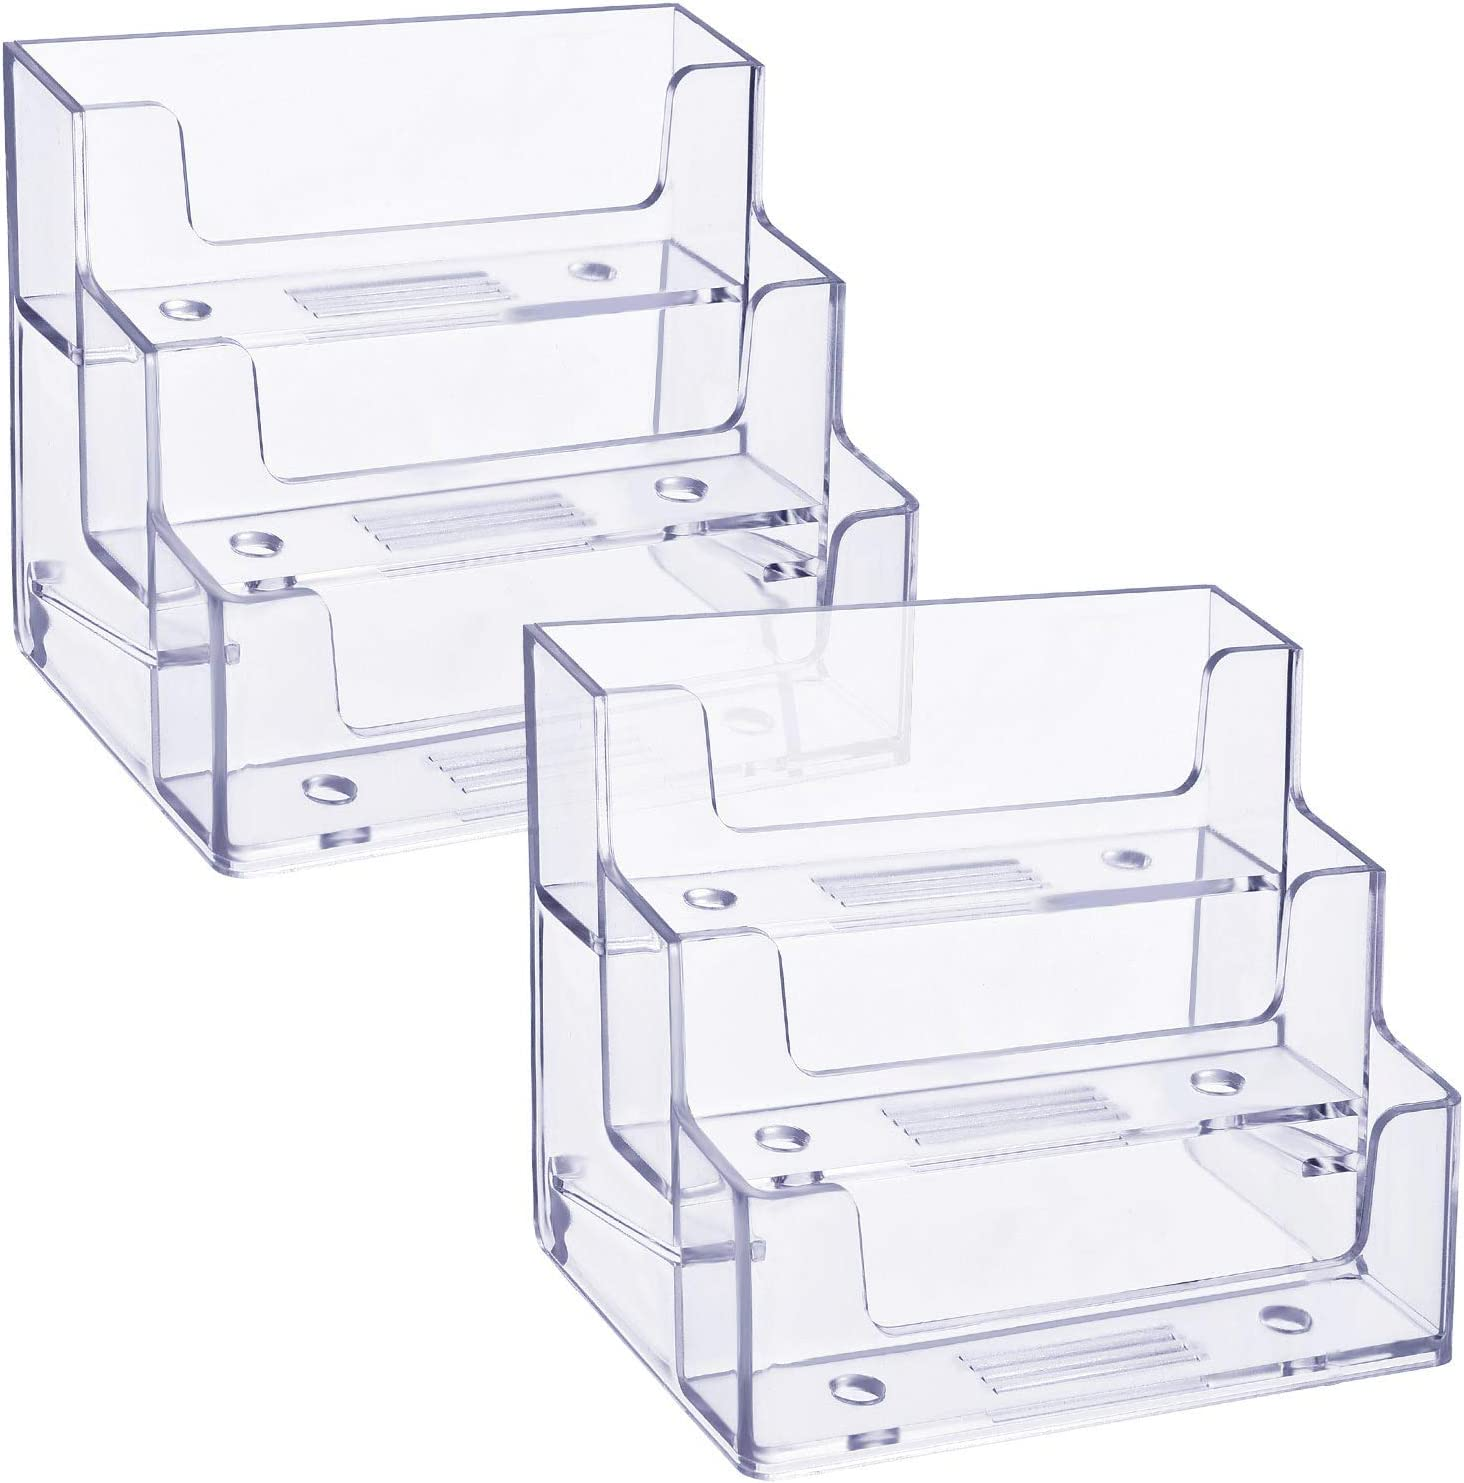 TecUnite online shopping Business Card Holder 3 Plastic Tiers Stand Organiz specialty shop